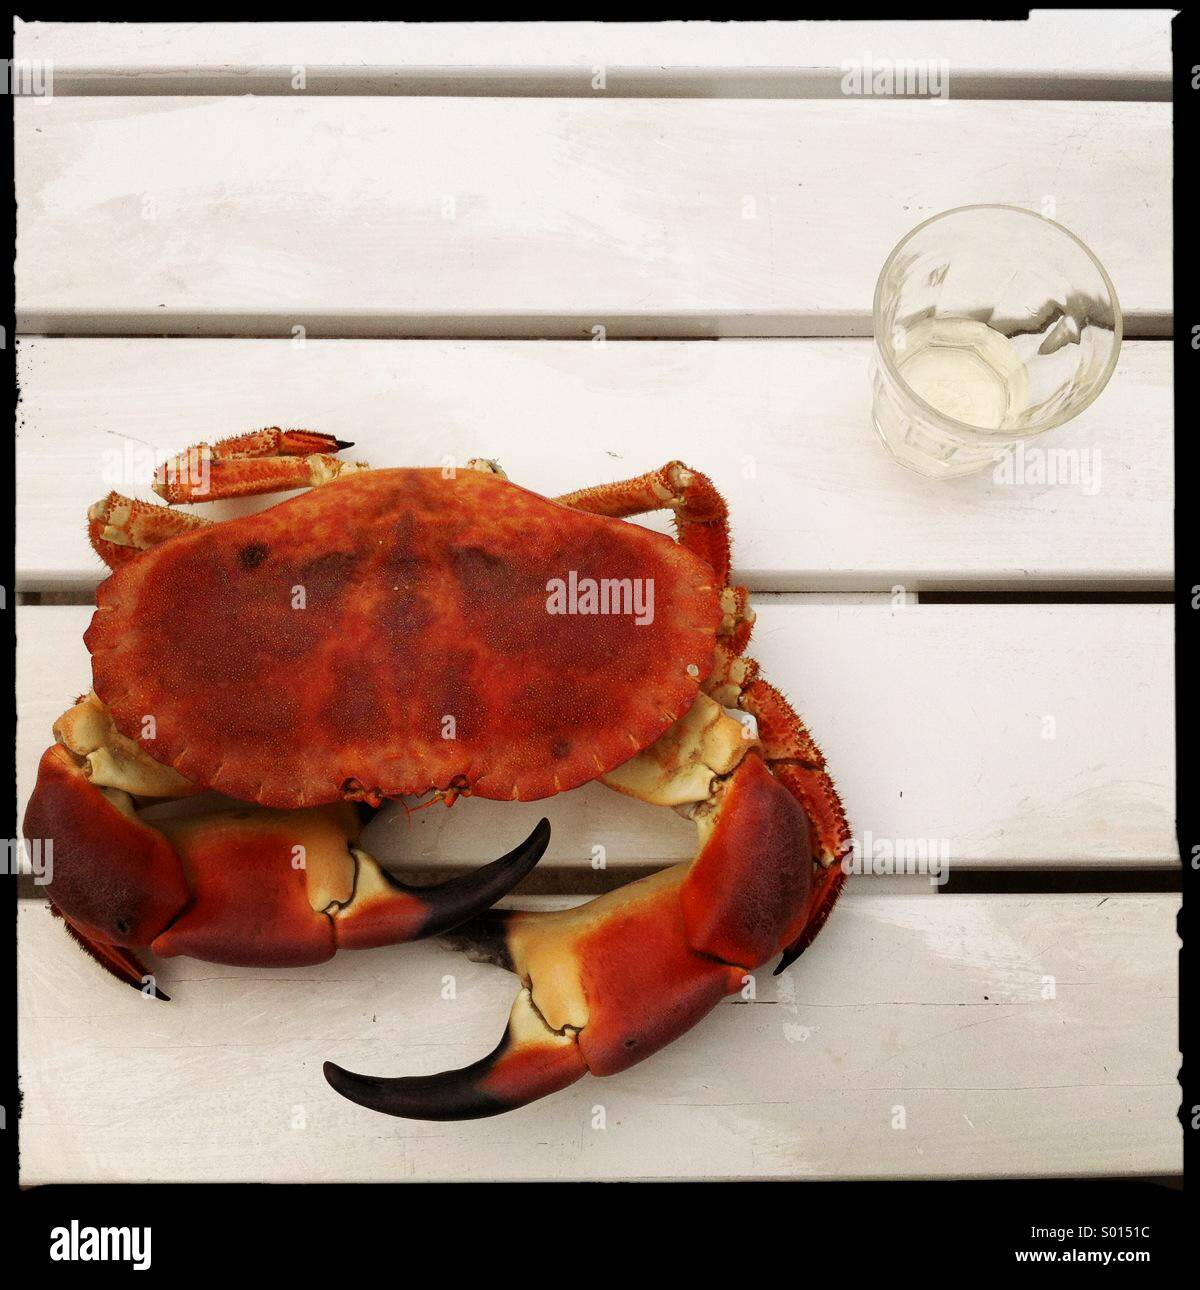 a crab and glass of wine - Stock Image